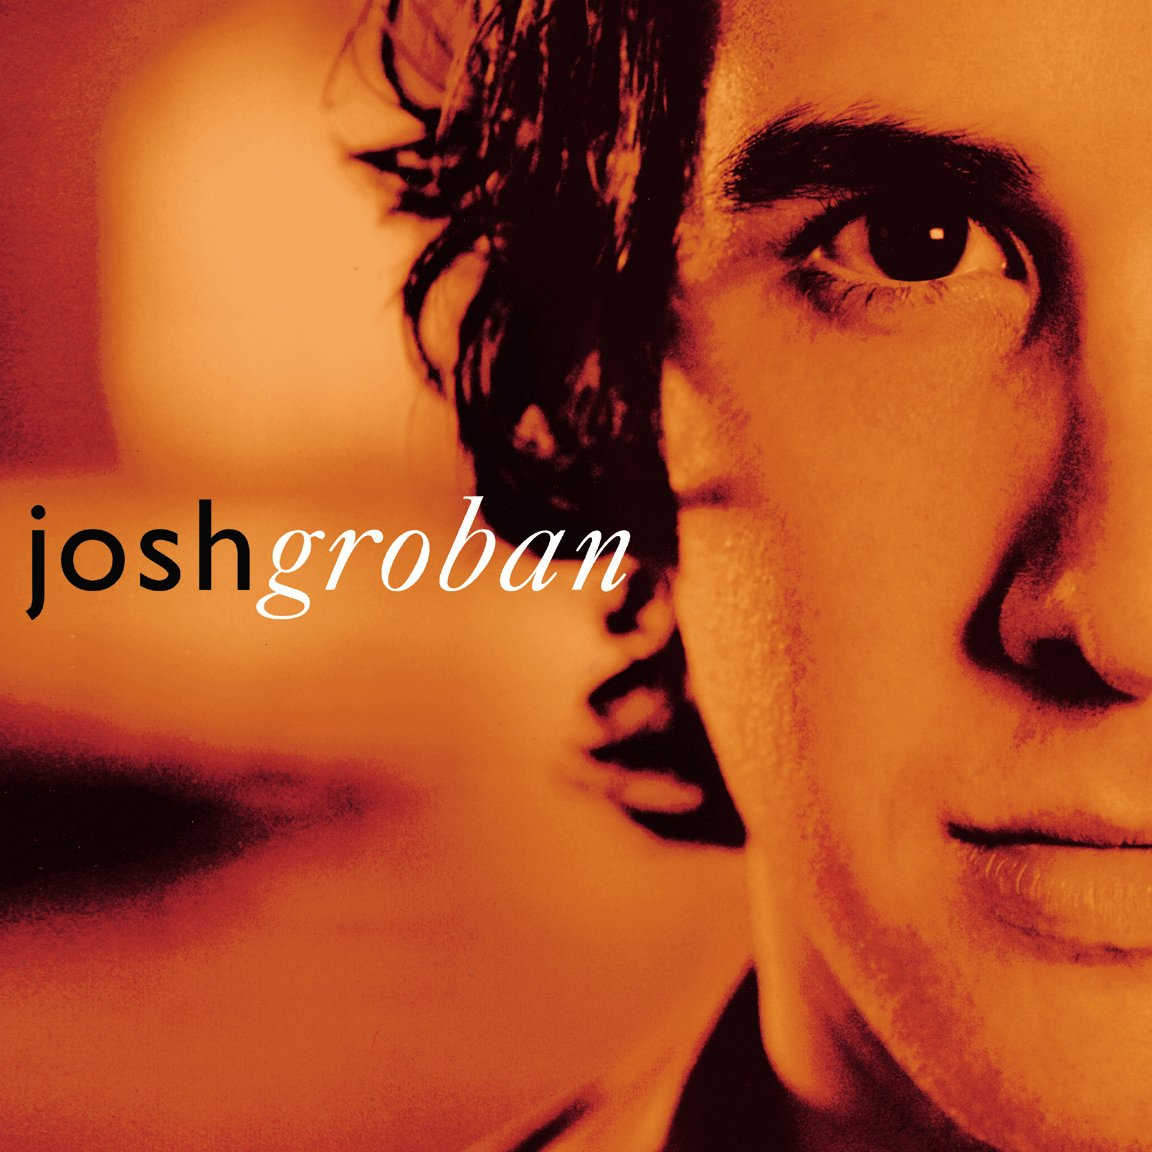 Josh Groban - Closer - Amazon.com Music